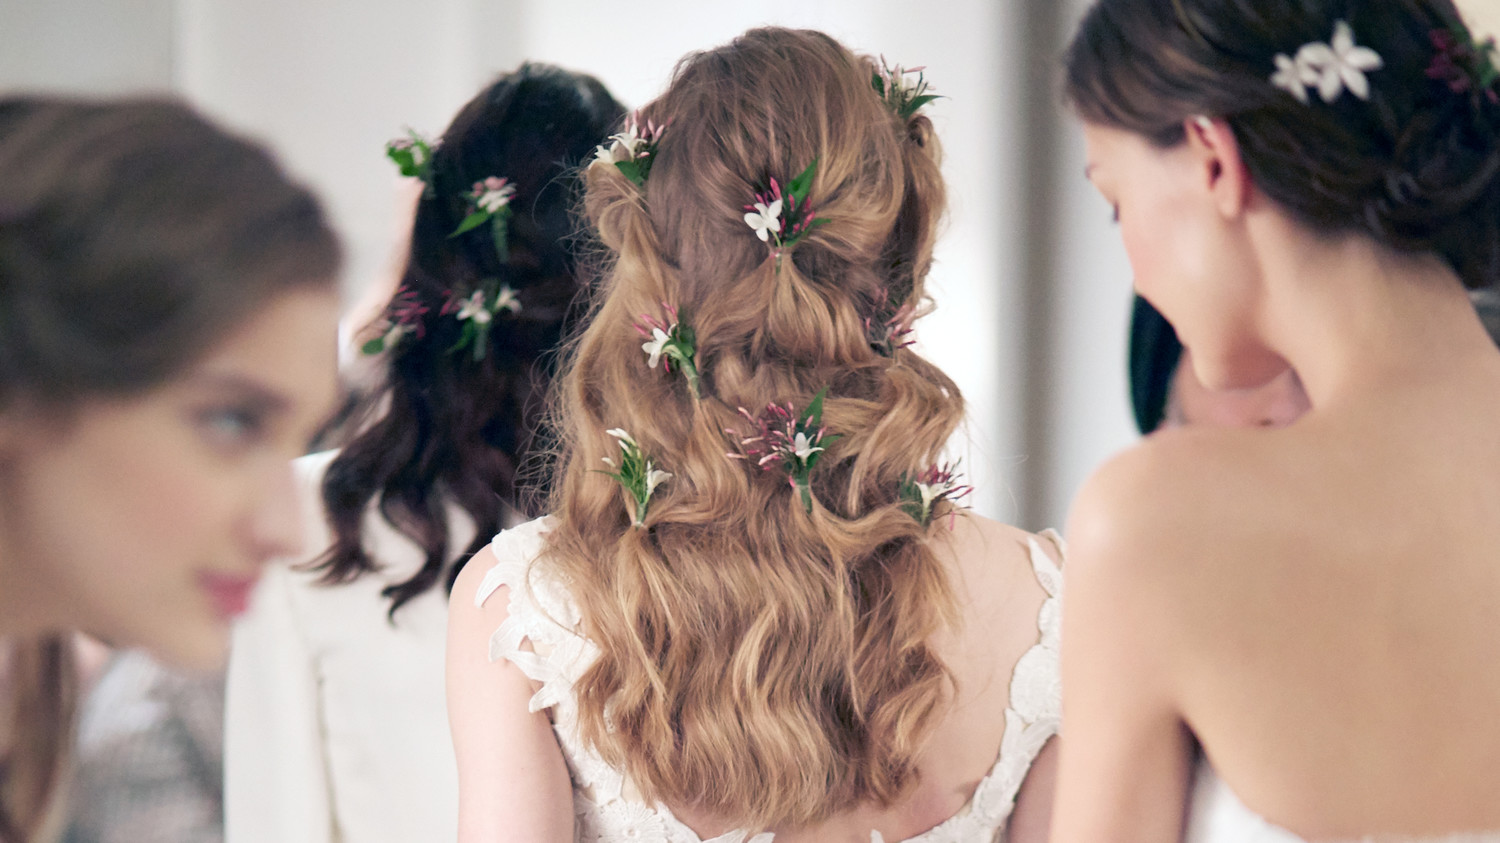 Bridal Hairstyles 2016: 5 Wedding Hairstyle Ideas From The Spring 2016 Bridal